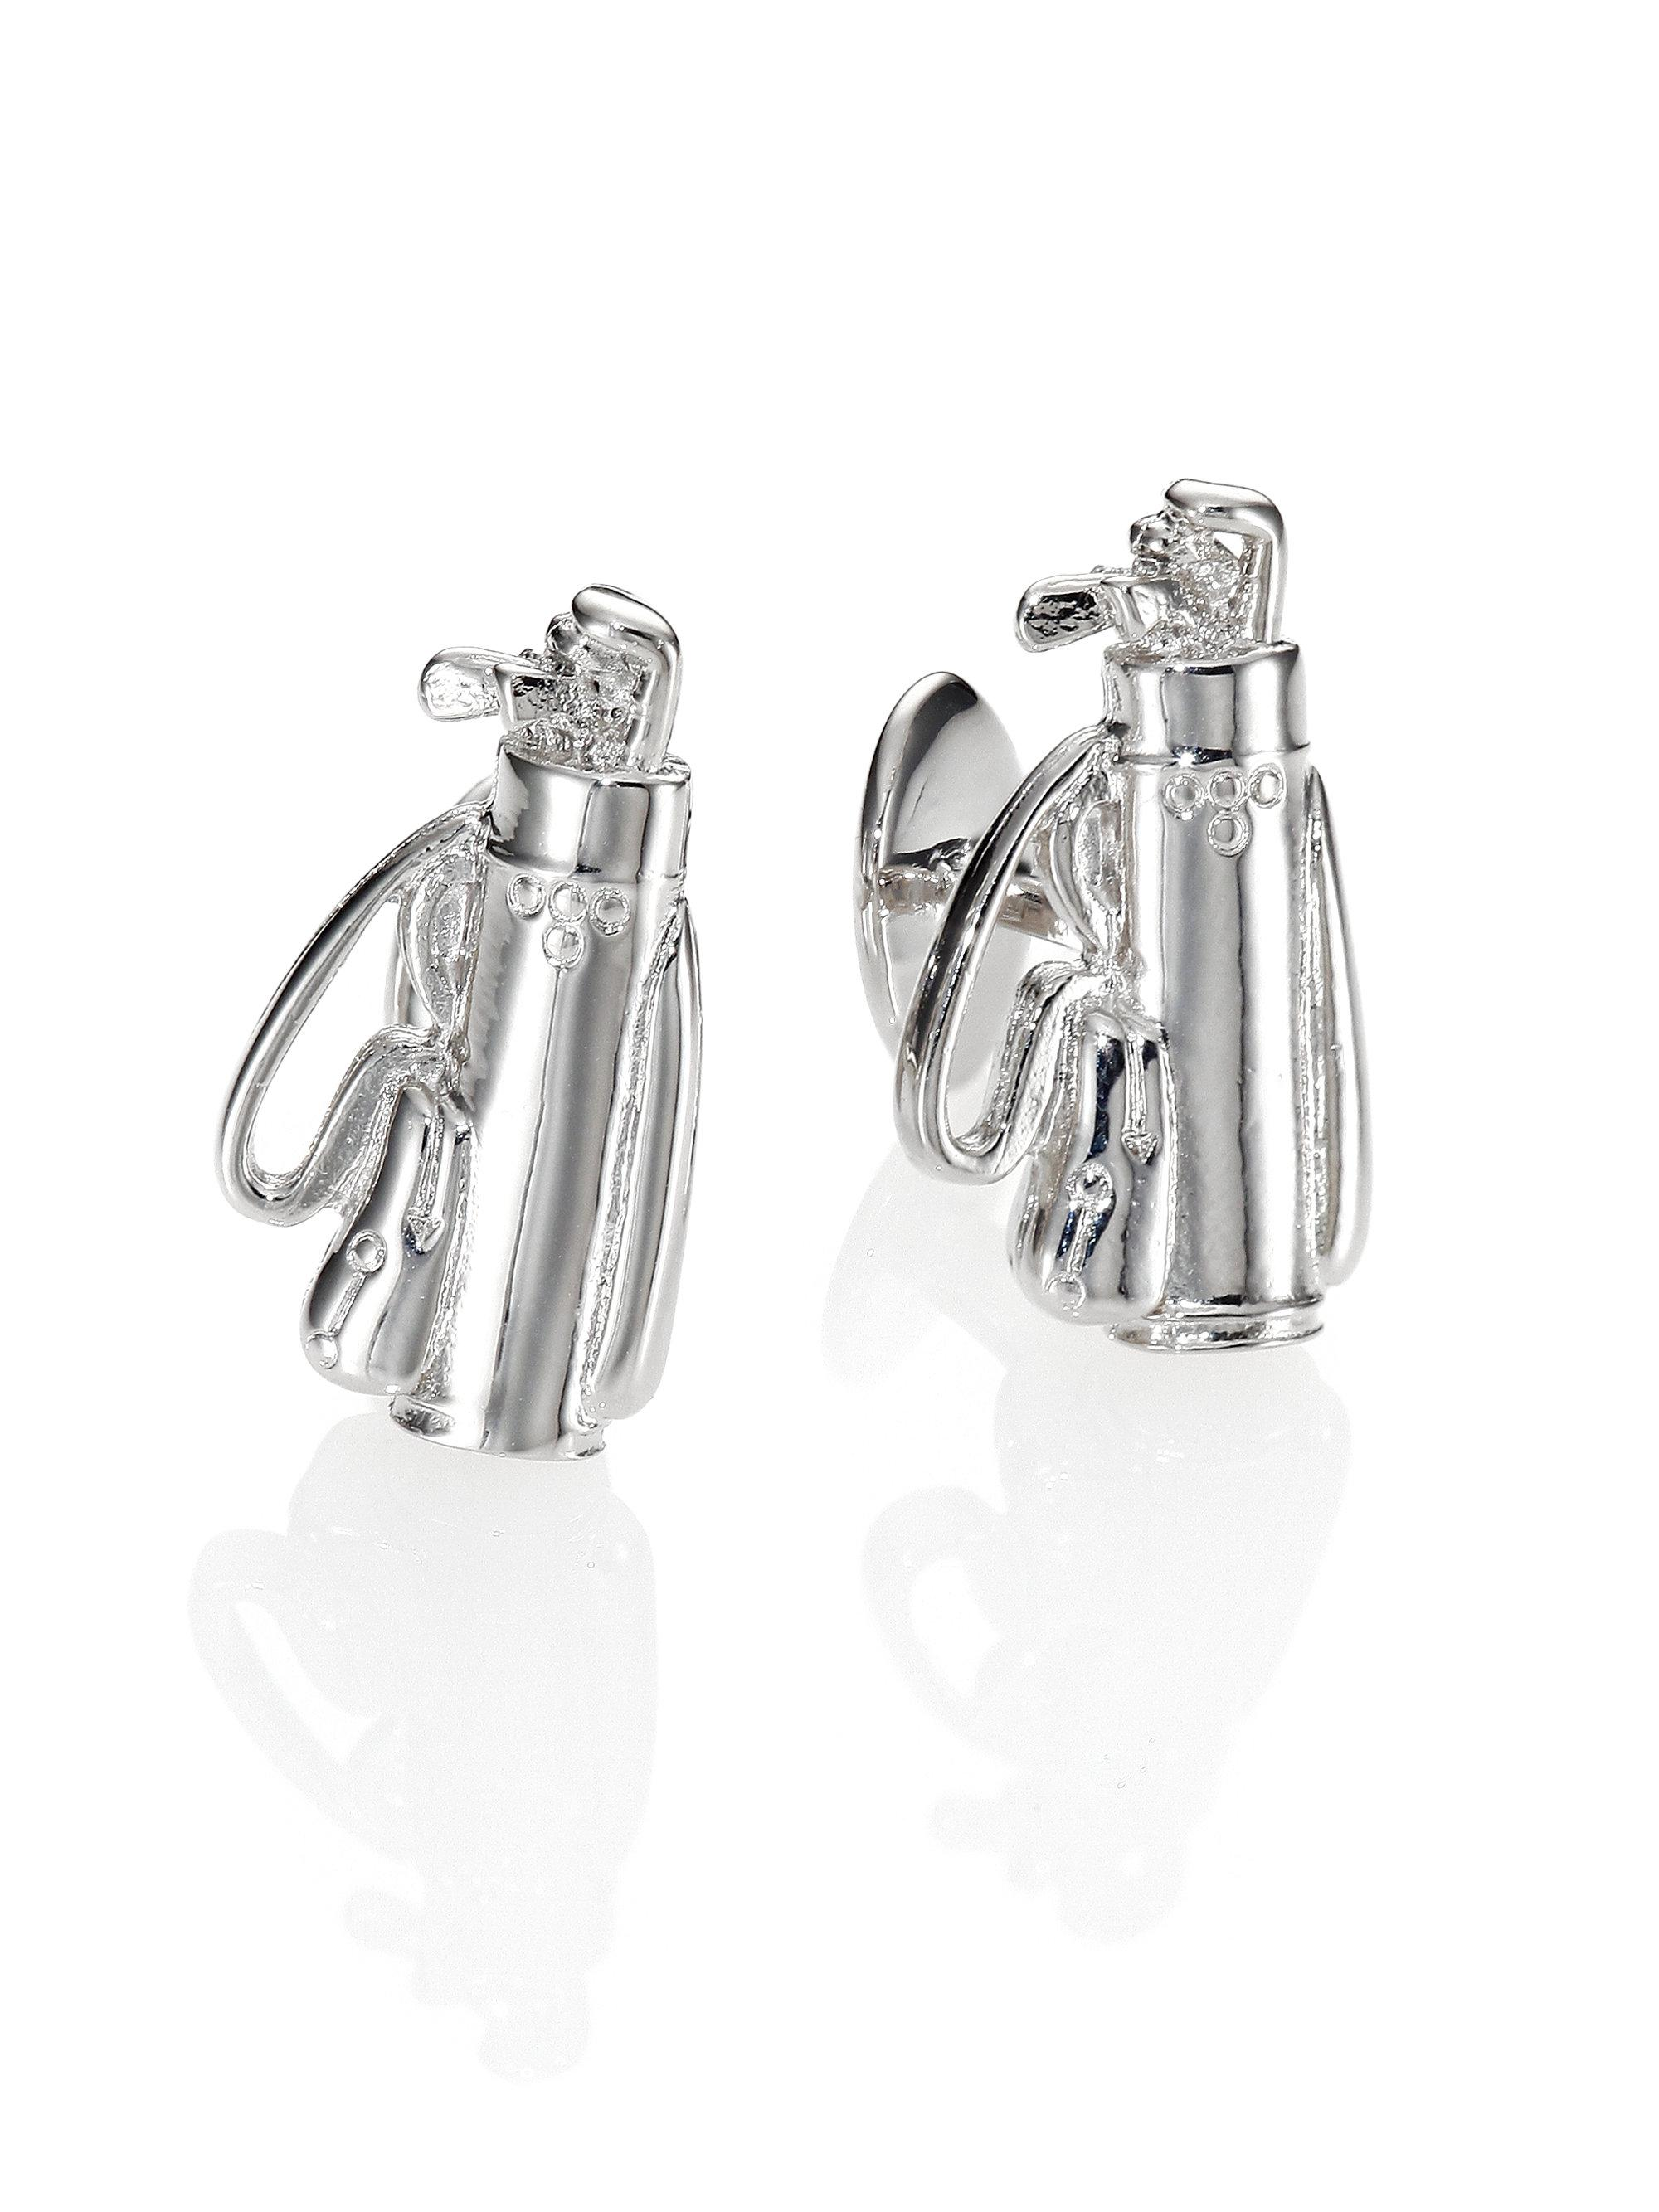 David Donahue Sterling Silver Golf Bag Cuff Links in